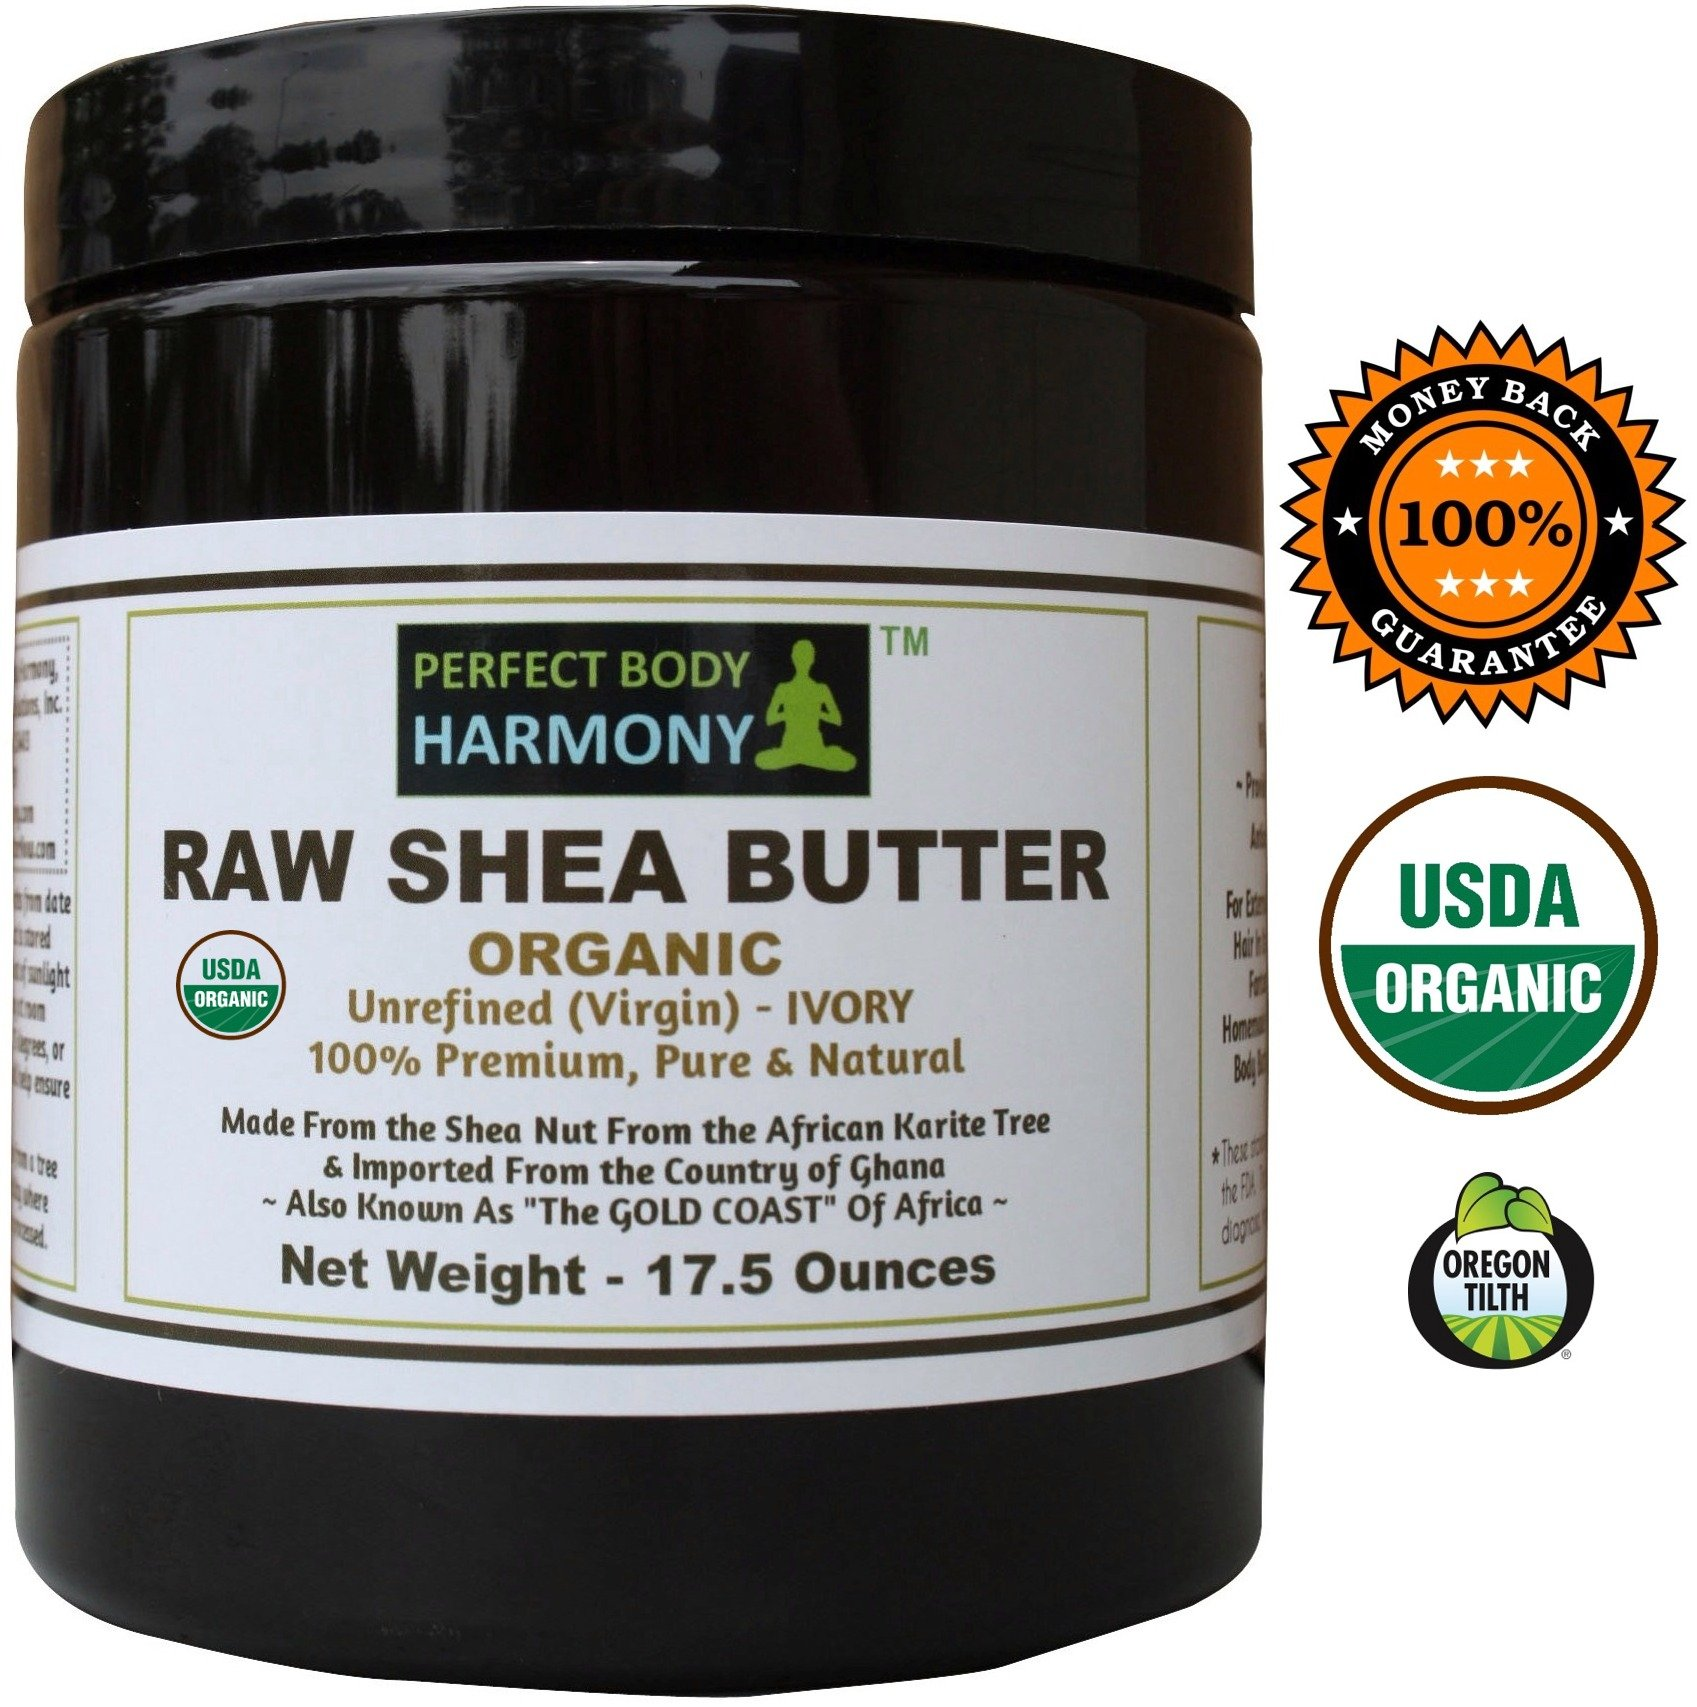 Perfect Body Harmony CERTIFIED ORGANIC Raw Shea Butter *Huge 17.5 oz X LARGE UV AMBER BPA Free JAR! AUTHENTIC Organic African 100% Premium TOP Quality Unrefined IVORY. Best Natural Noncomedogenic